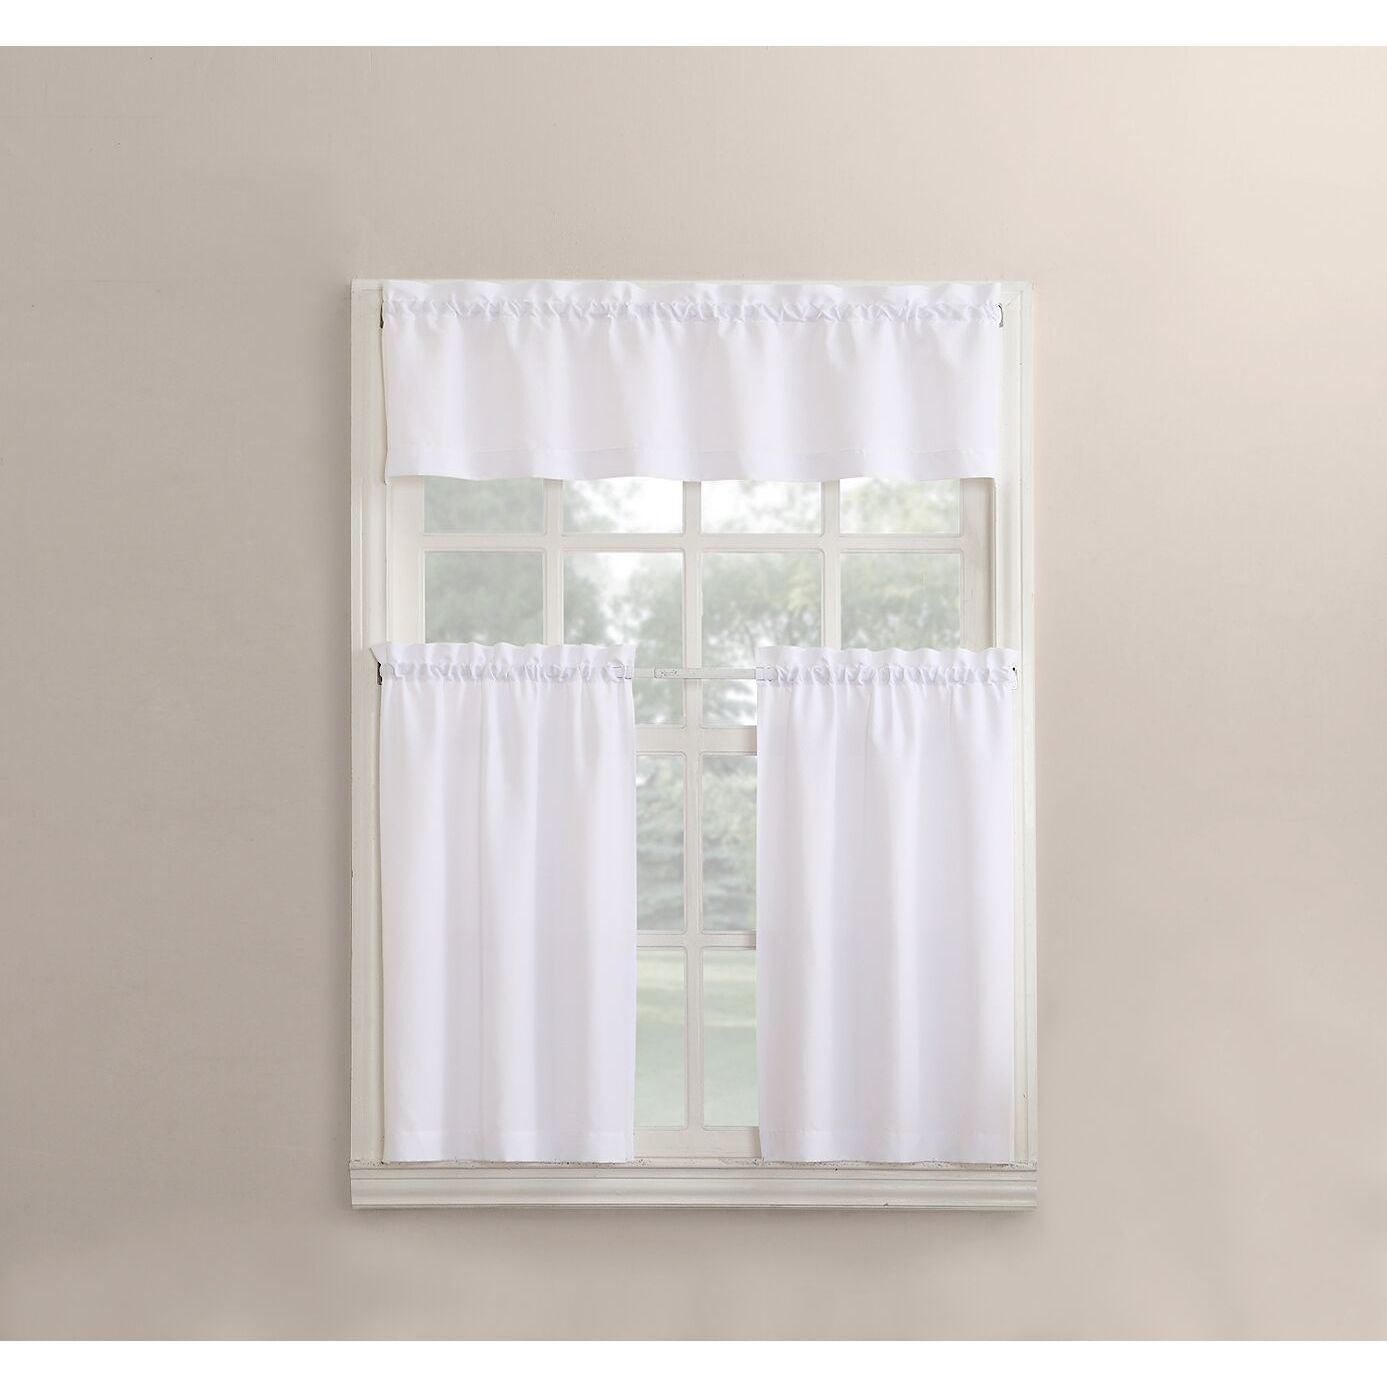 No martine microfiber piece kitchen curtain valance and tiers